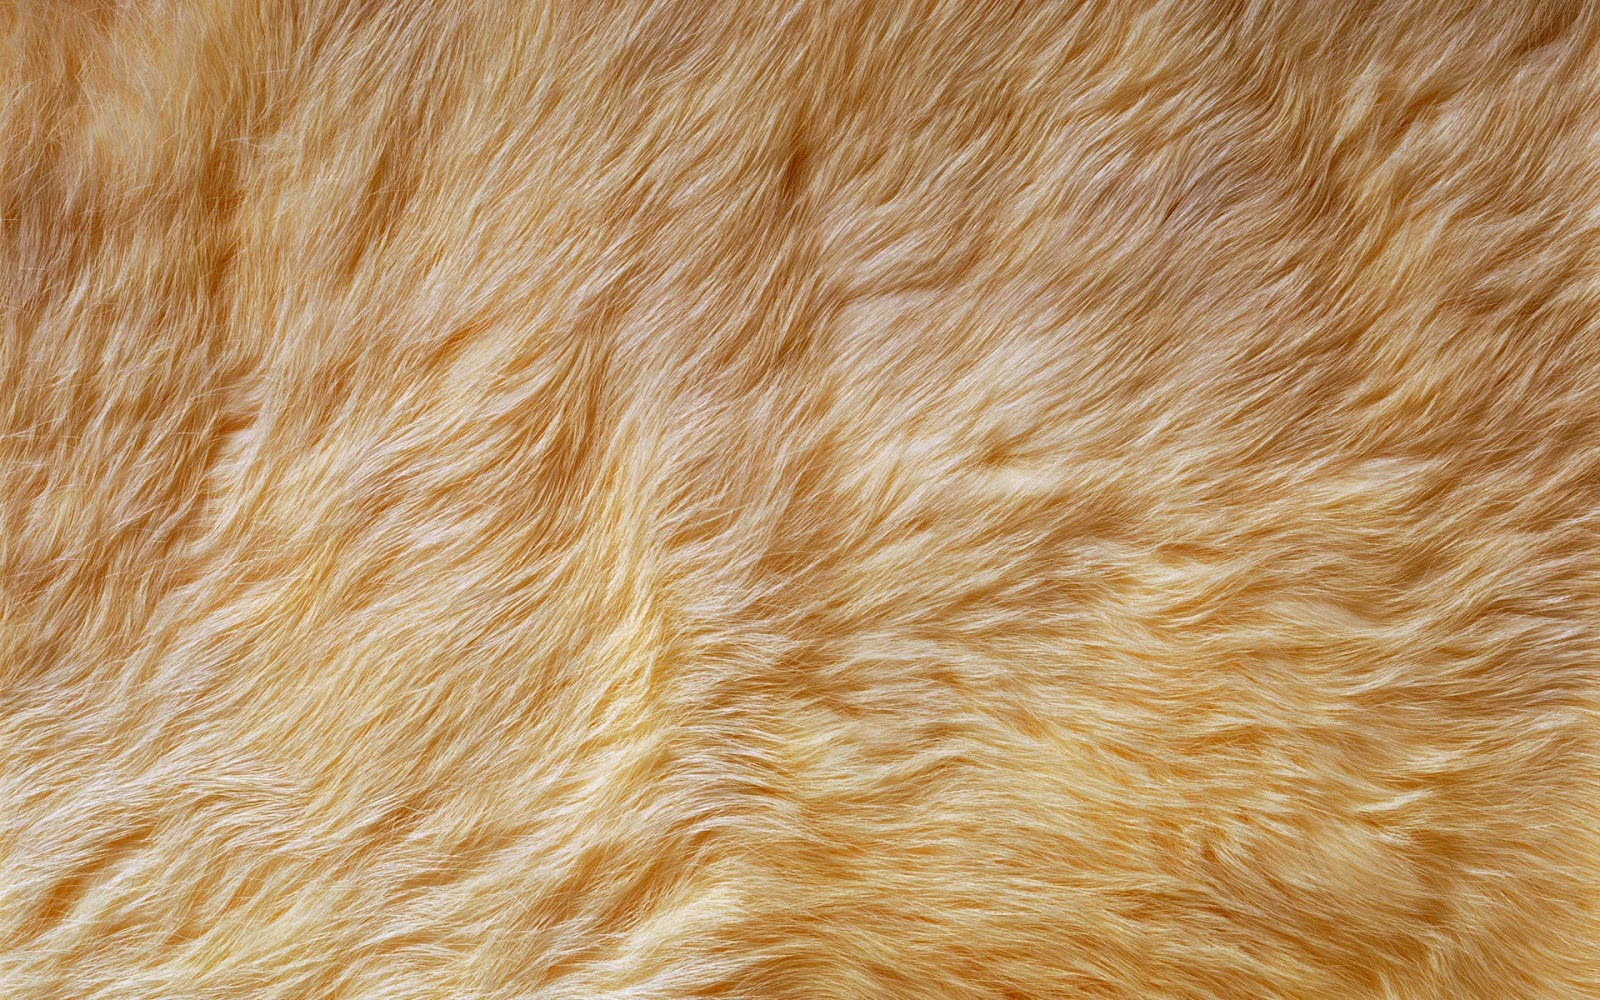 Free Fur Wallpaper For Bedrooms Beautiful Desktop